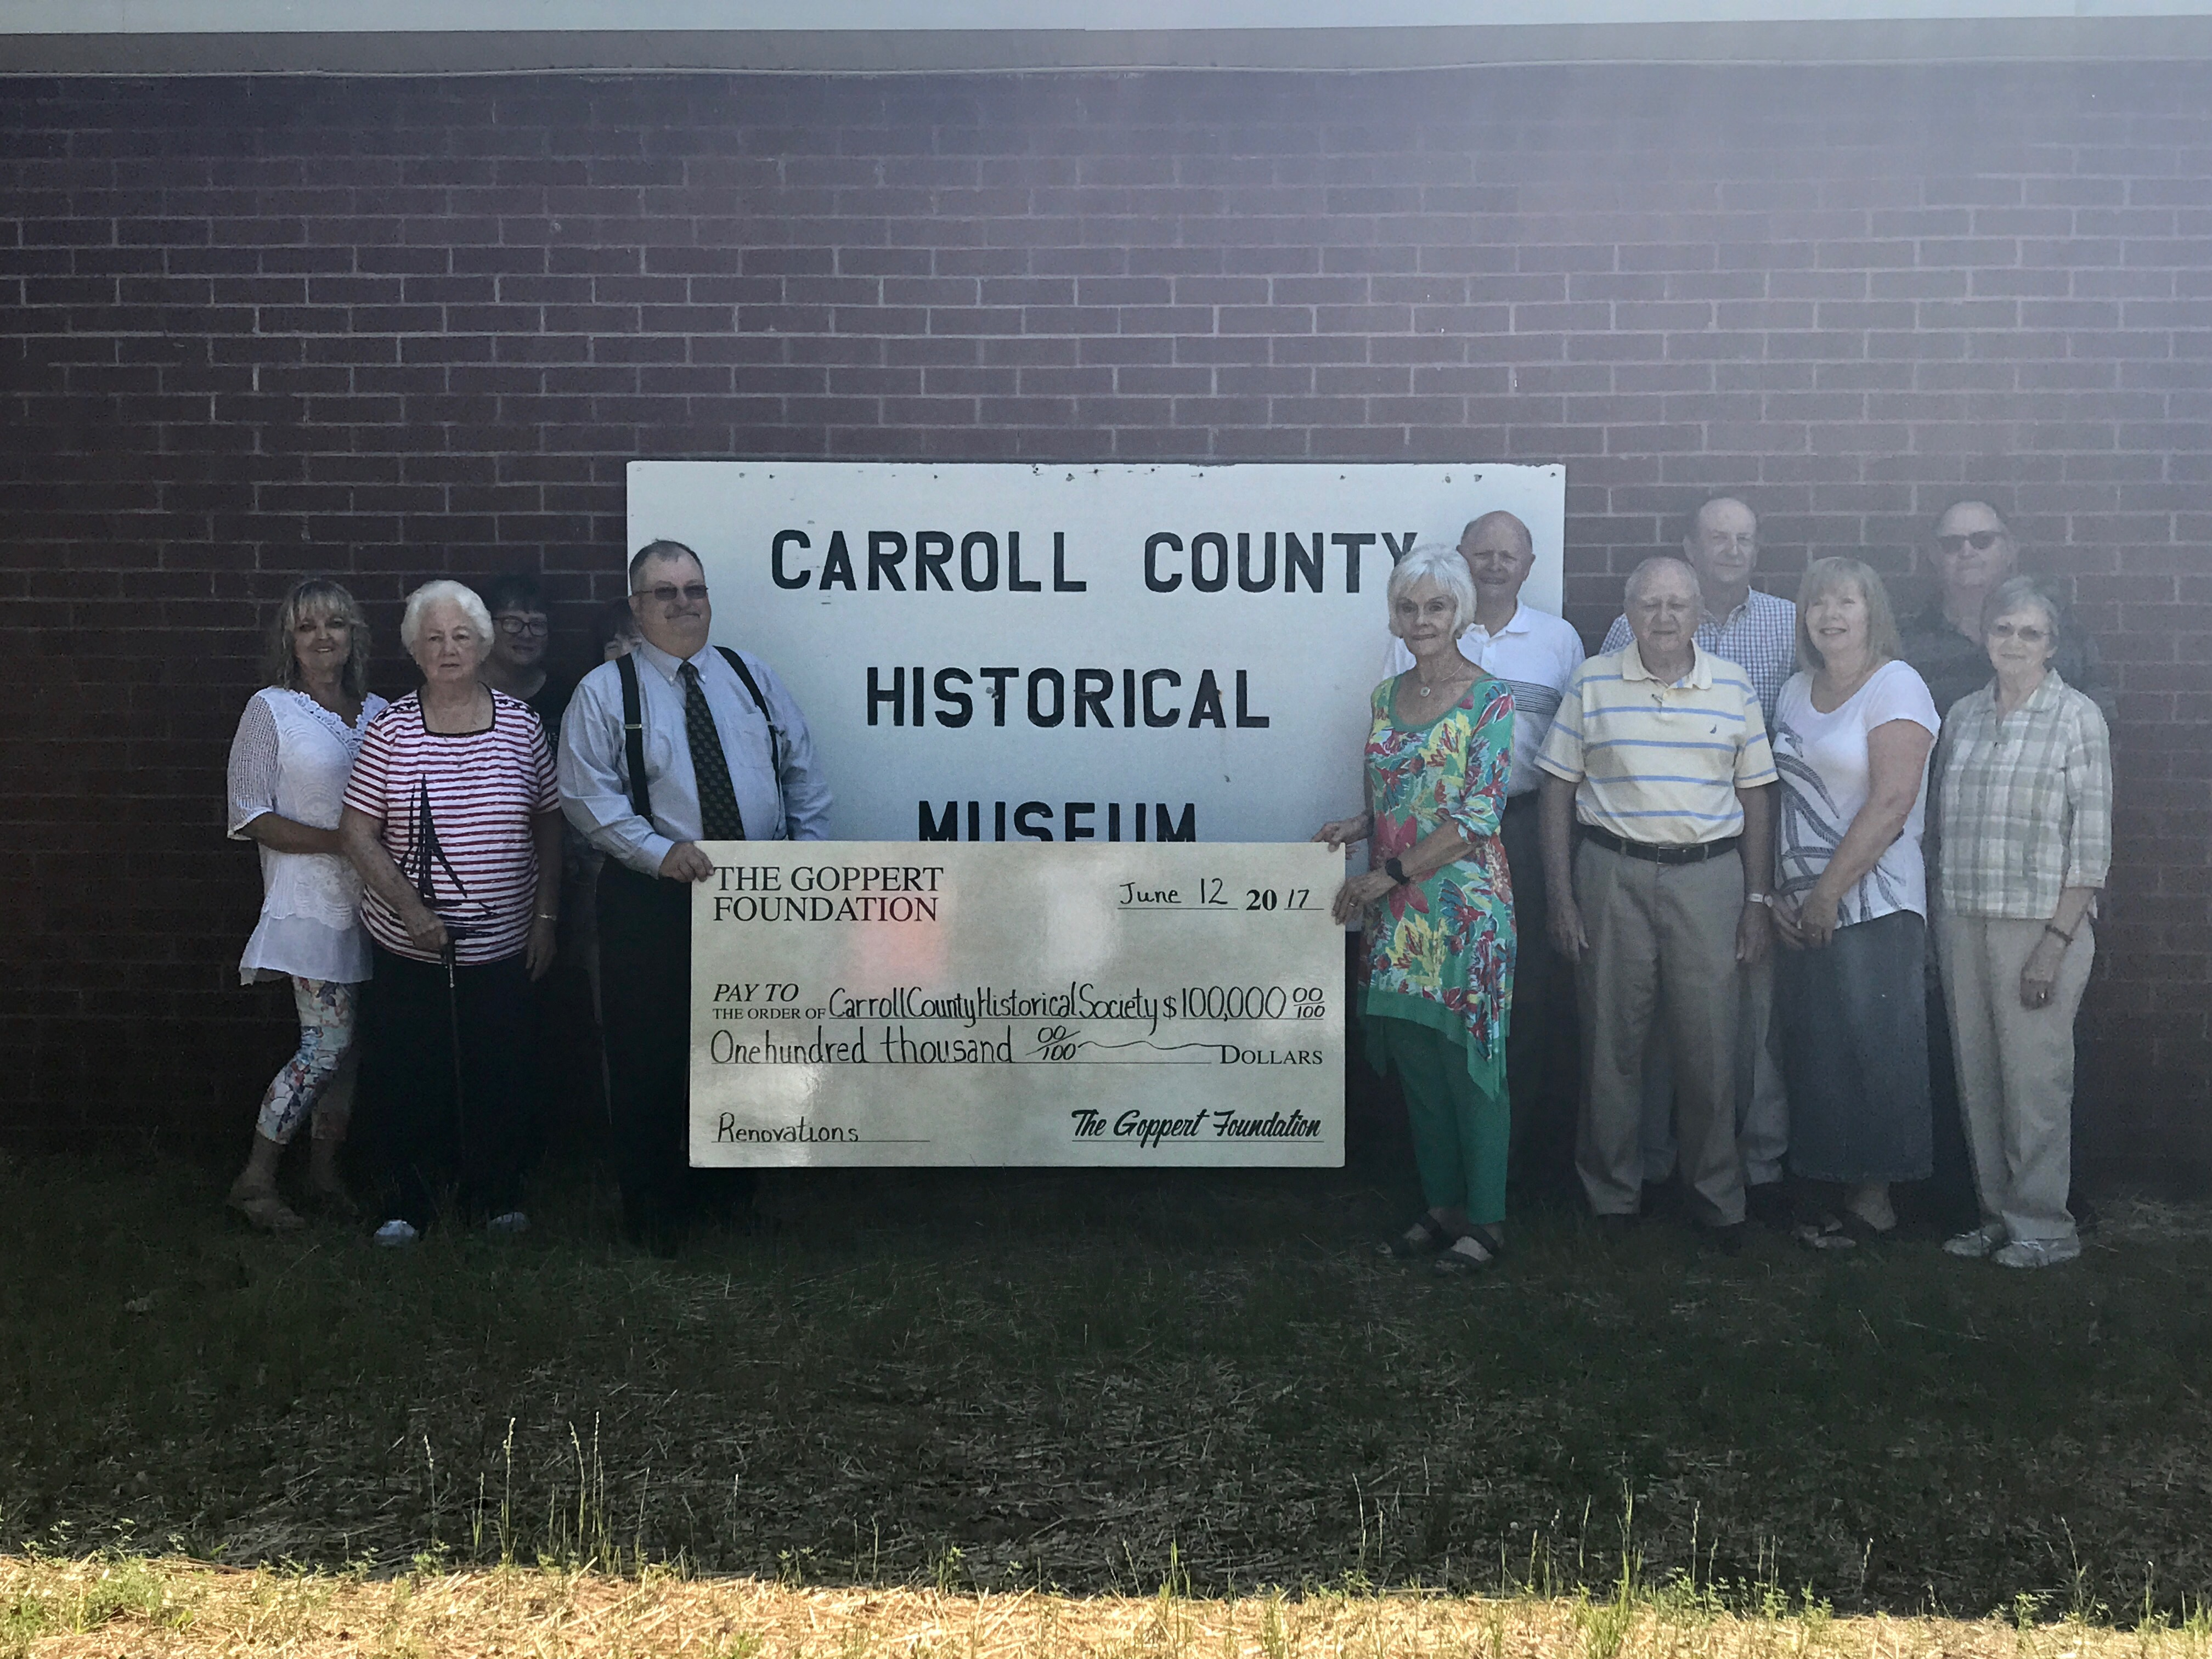 Carroll County Historical Society receives $100,000 grant from the Goppert Foundation